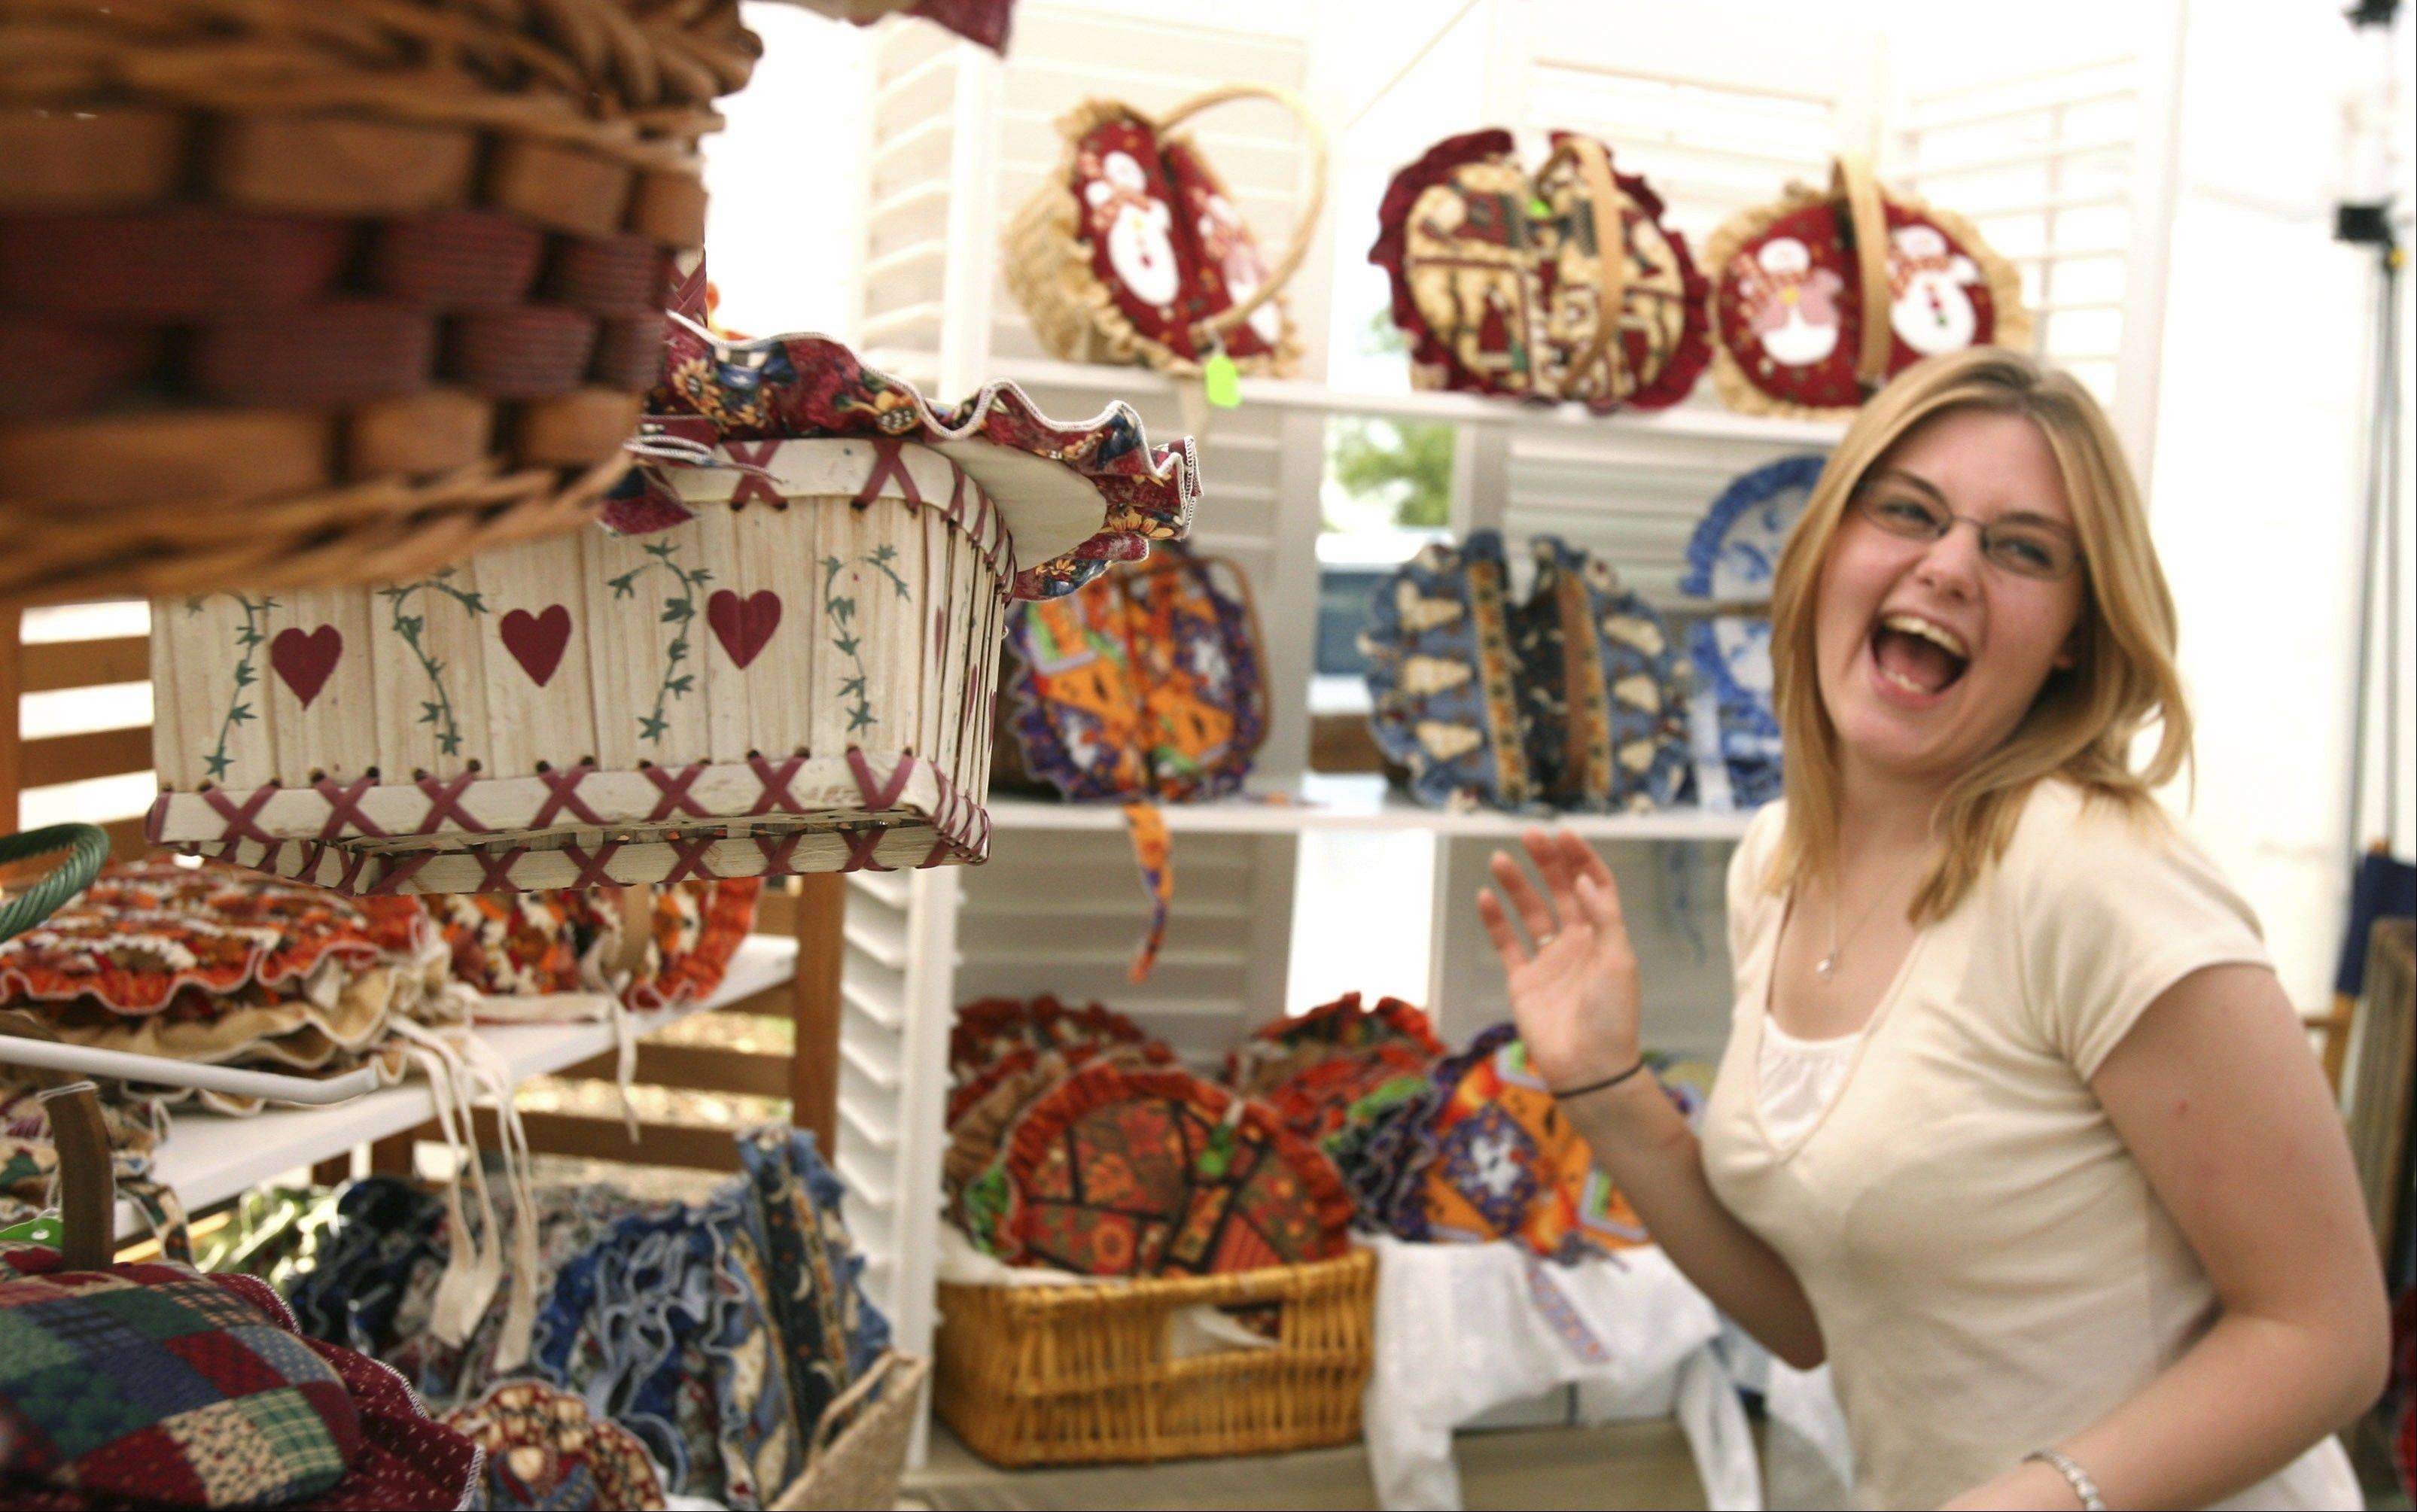 Courtney Kozeleh of Capron, Ill., selling crafts at the 2007 Buffalo Grove Days festival, jokes with a customer.